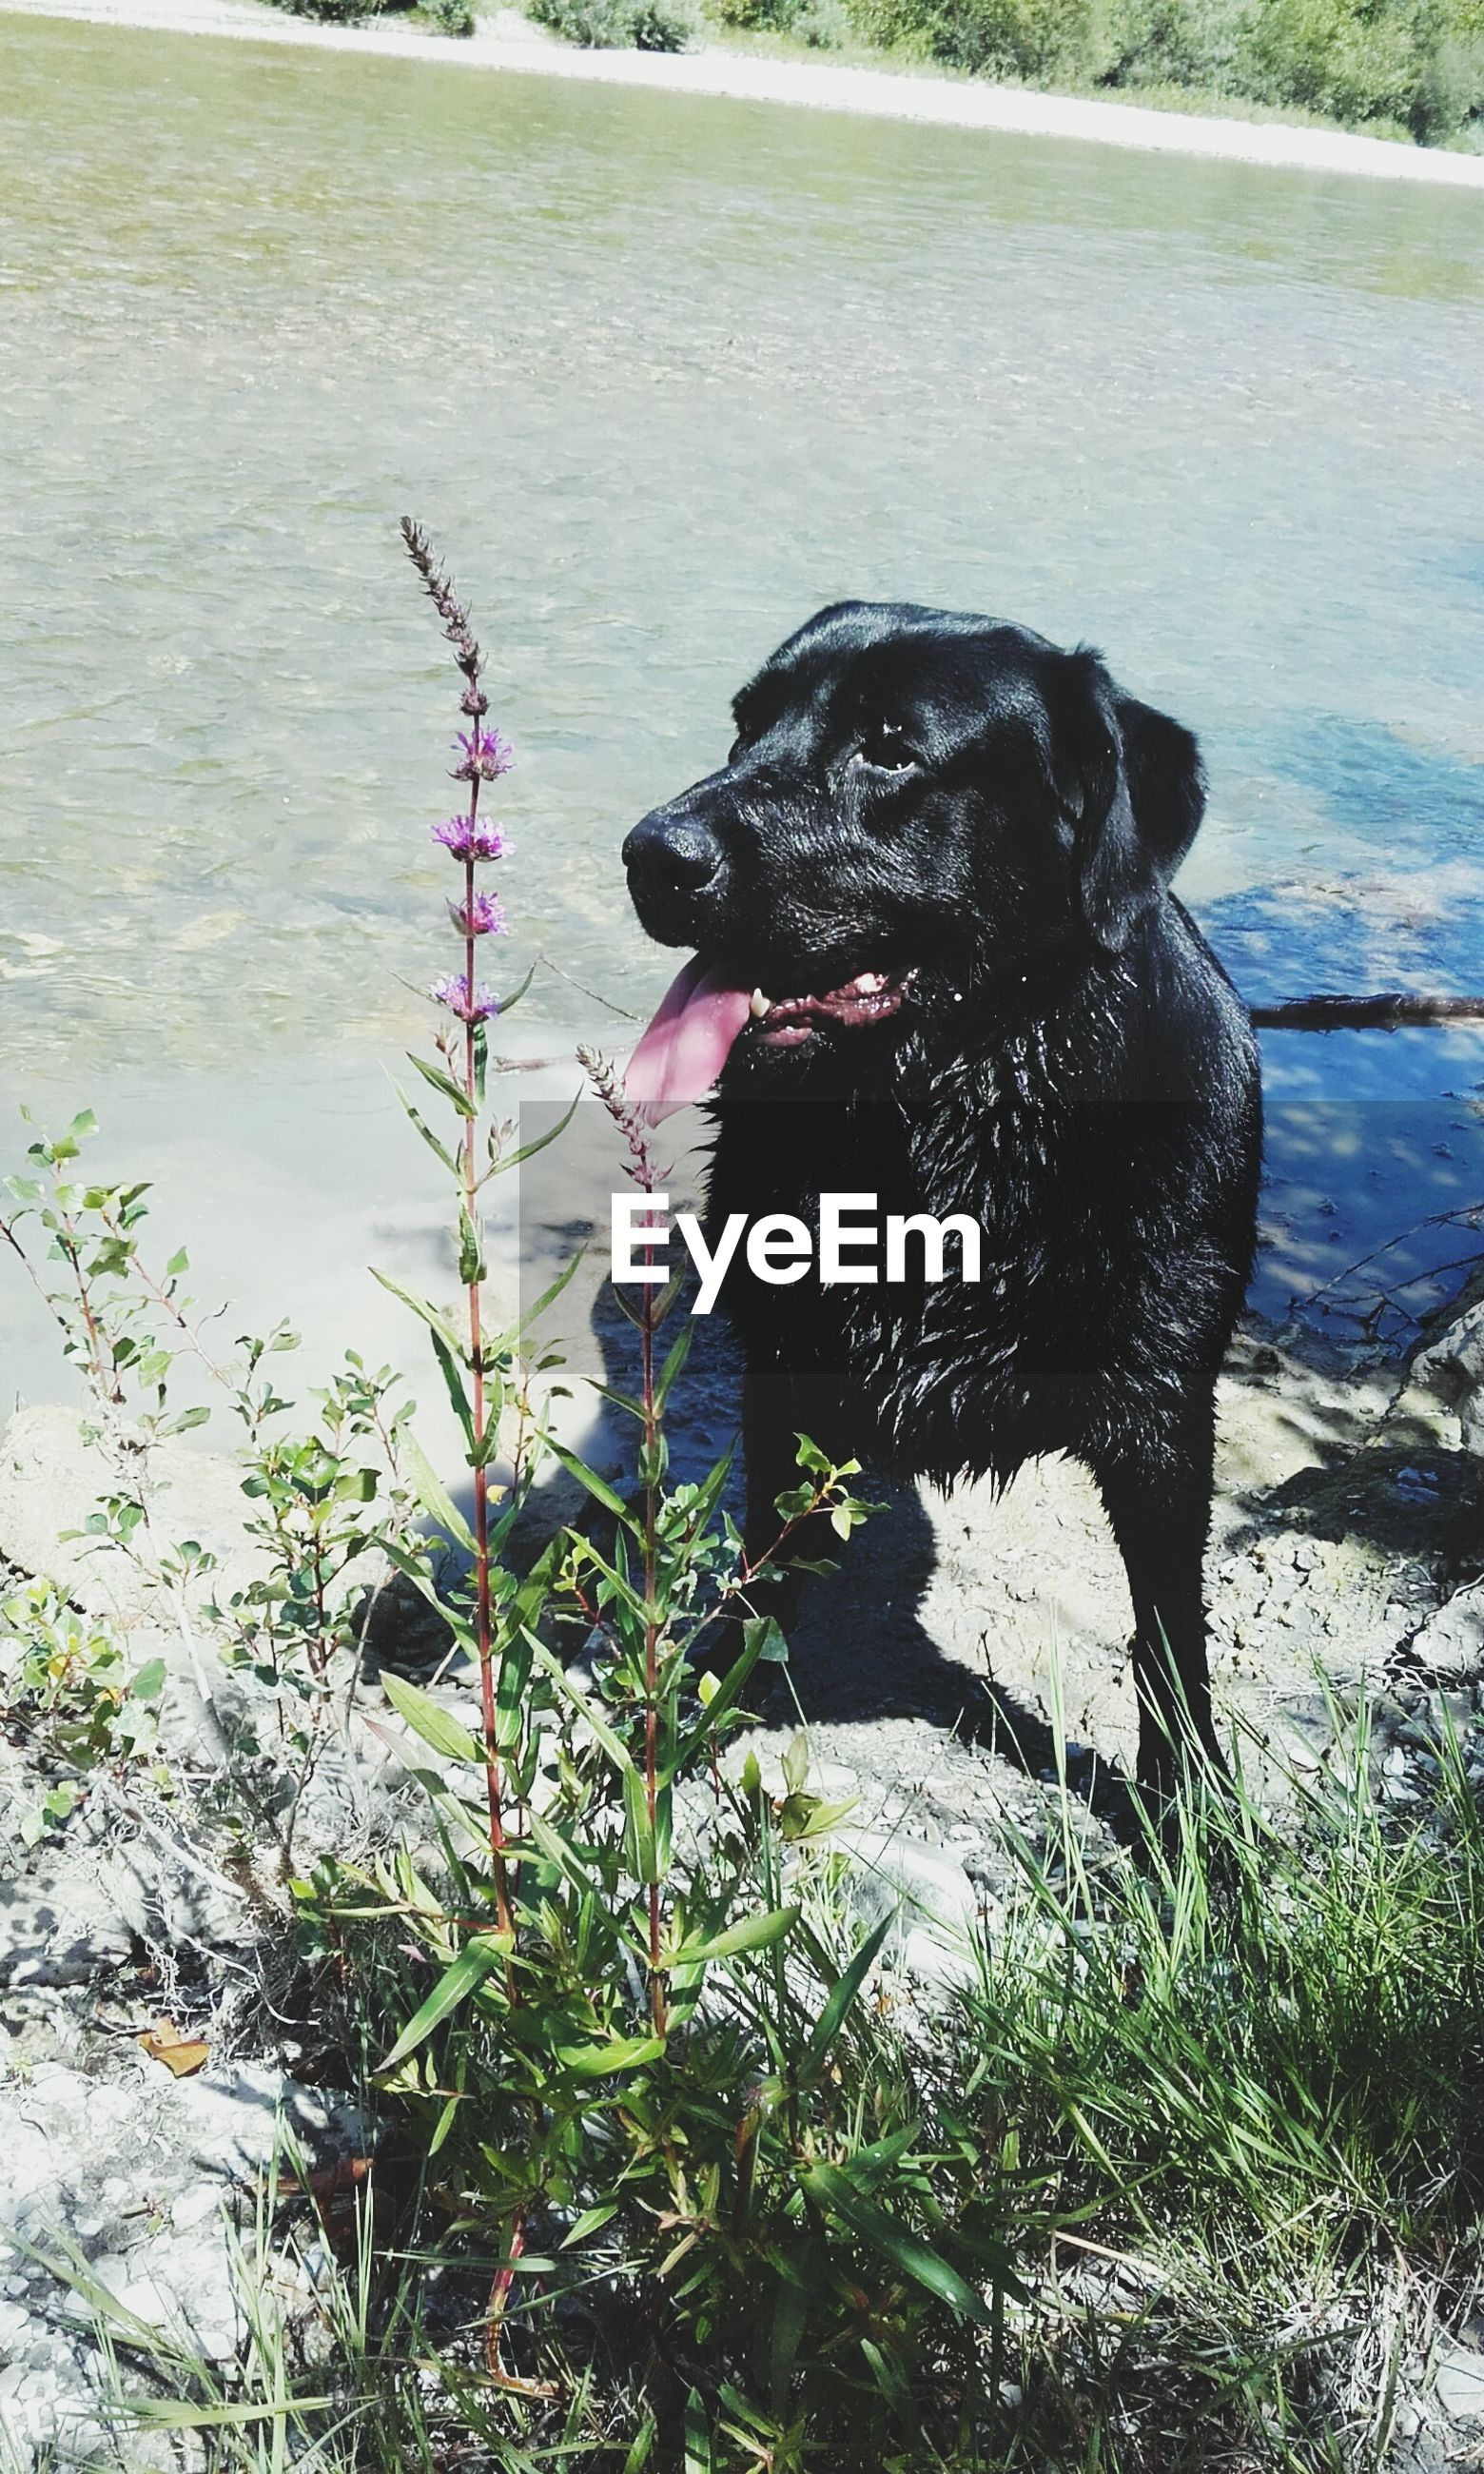 dog, pets, domestic animals, one animal, animal themes, mammal, water, black color, black labrador, outdoors, nature, day, labrador retriever, no people, sitting, sticking out tongue, panting, portrait, grass